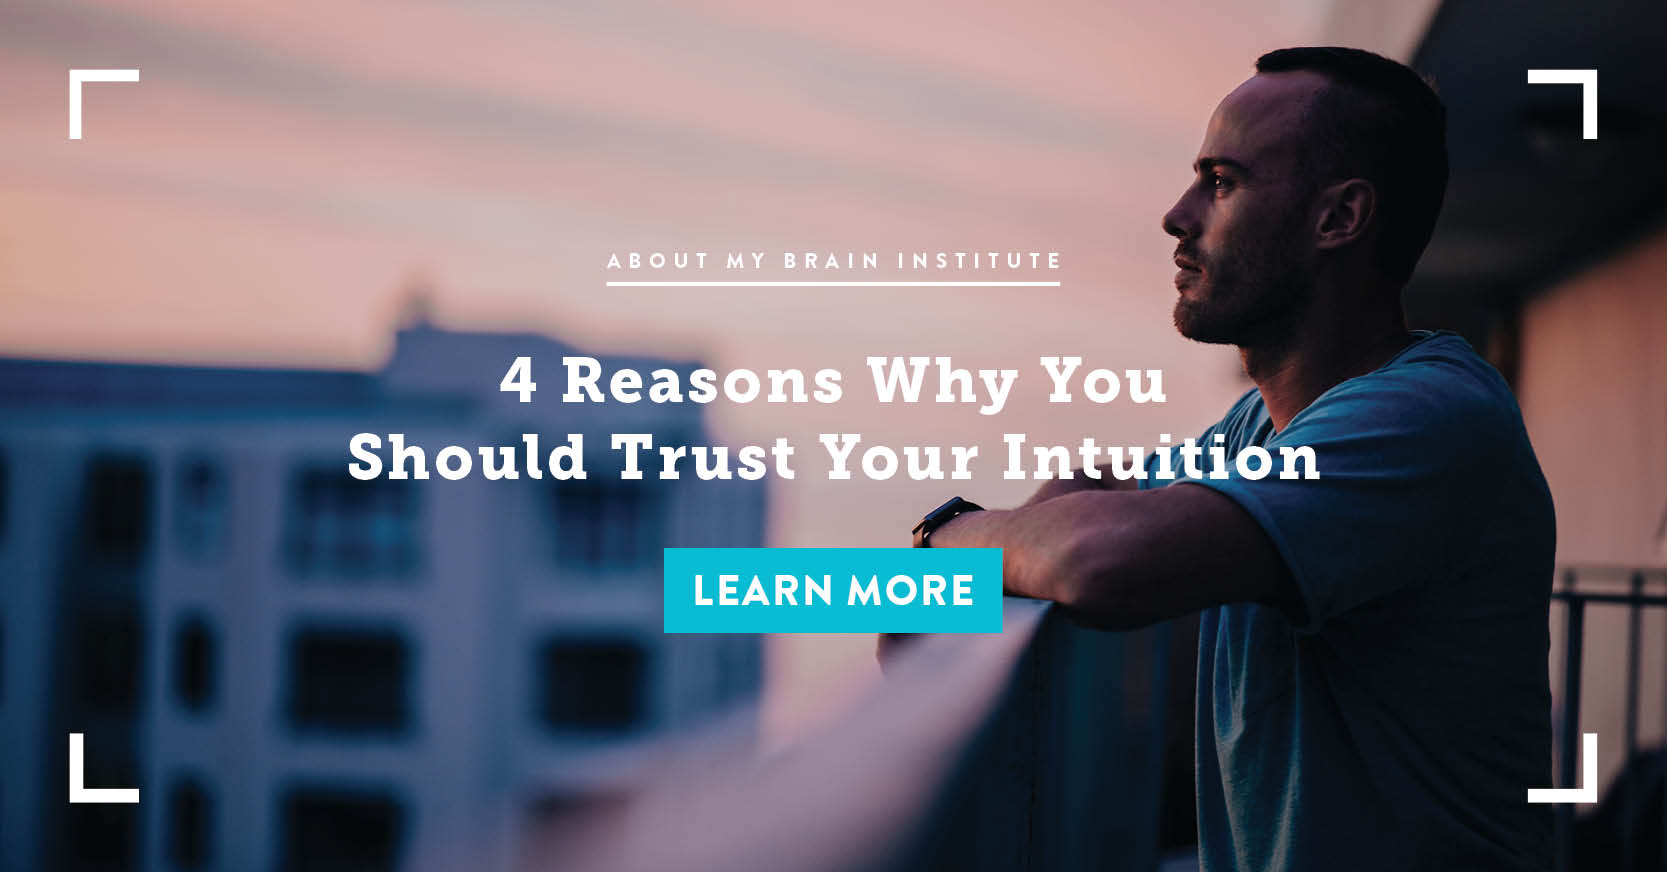 4 Reasons Why You Should Trust Your Intuition